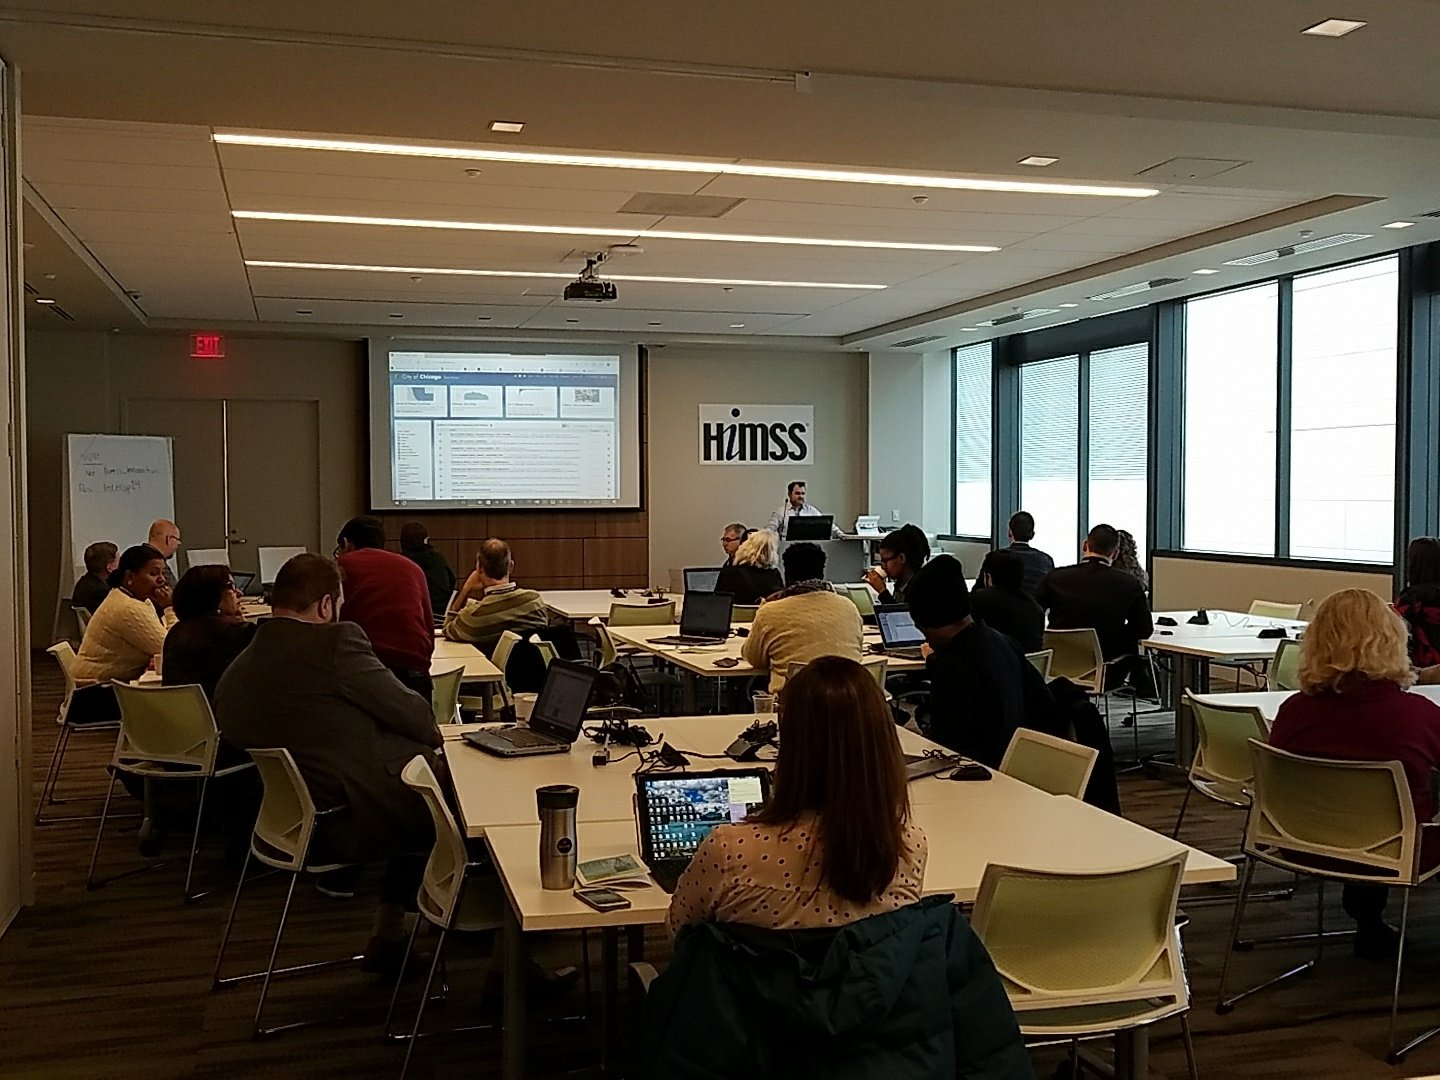 Microsoft's @AdamHecktman teaching at #datadayscle https://t.co/r4RVmZUlcn